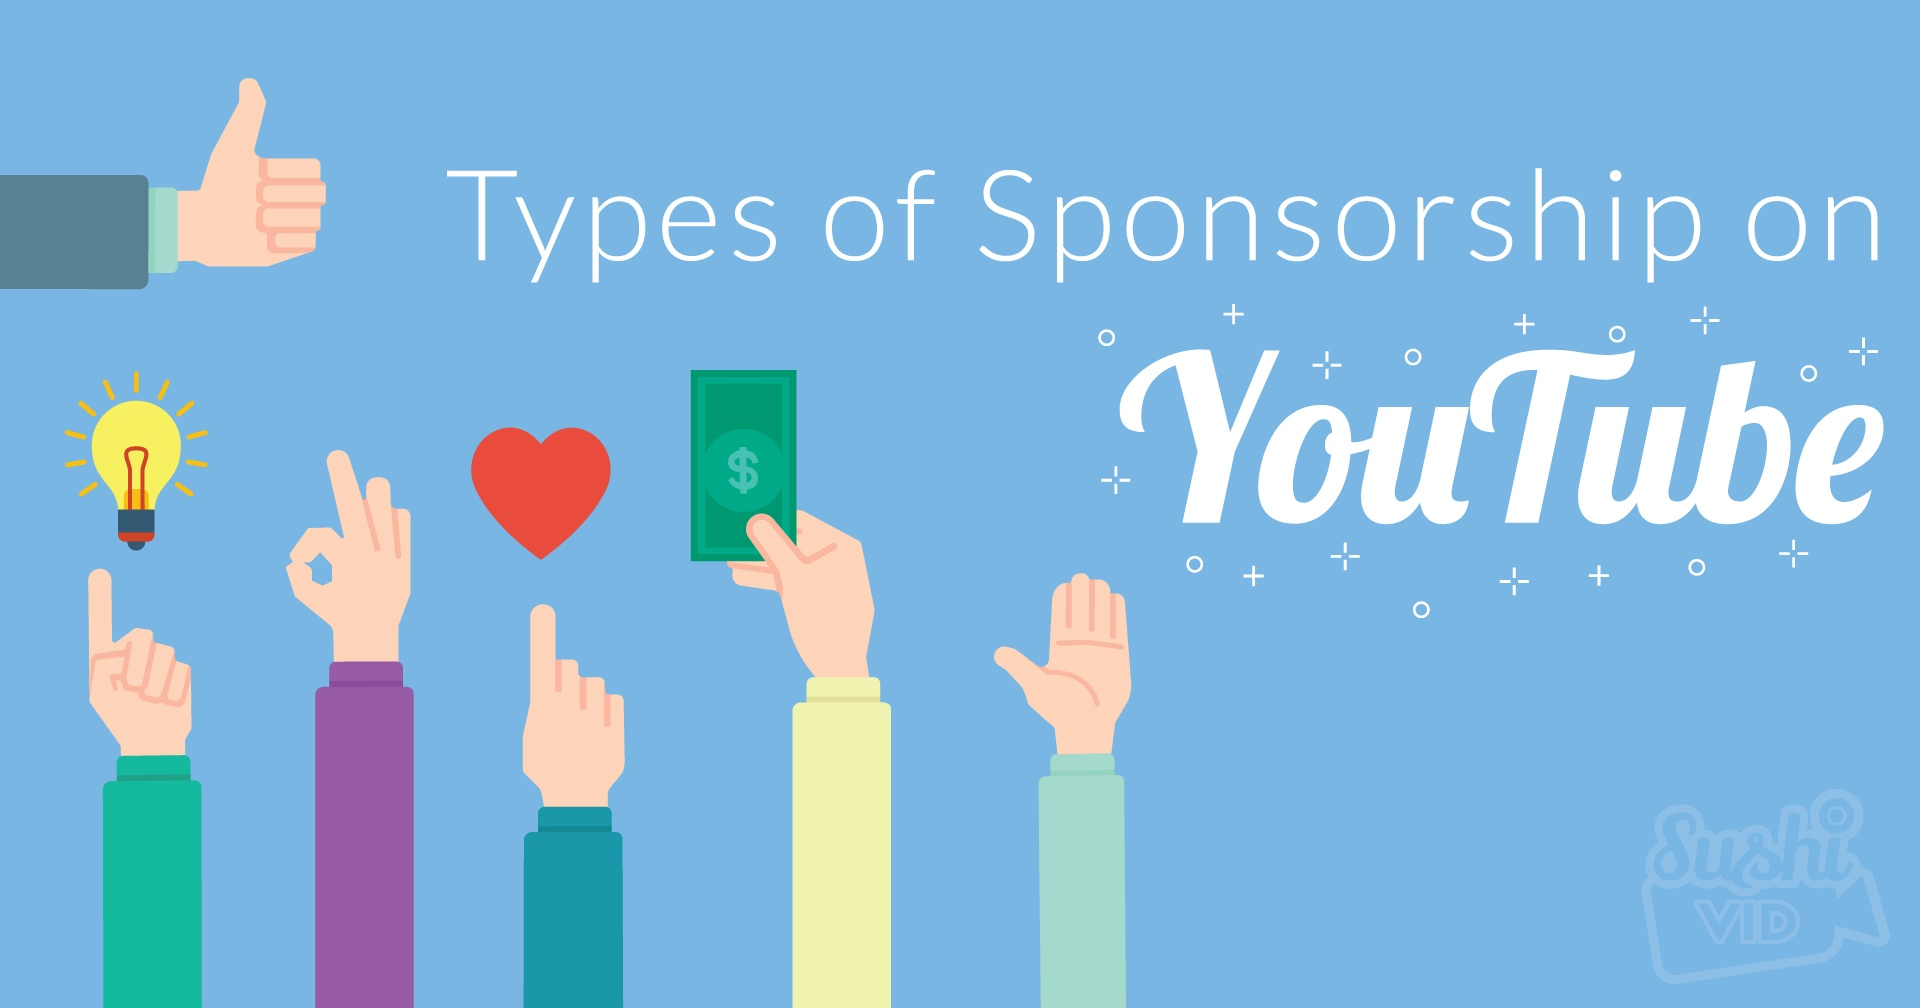 20151222 20  209 20types 20of 20sponsorships 20on 20youtube 20  20influencer 20marketing